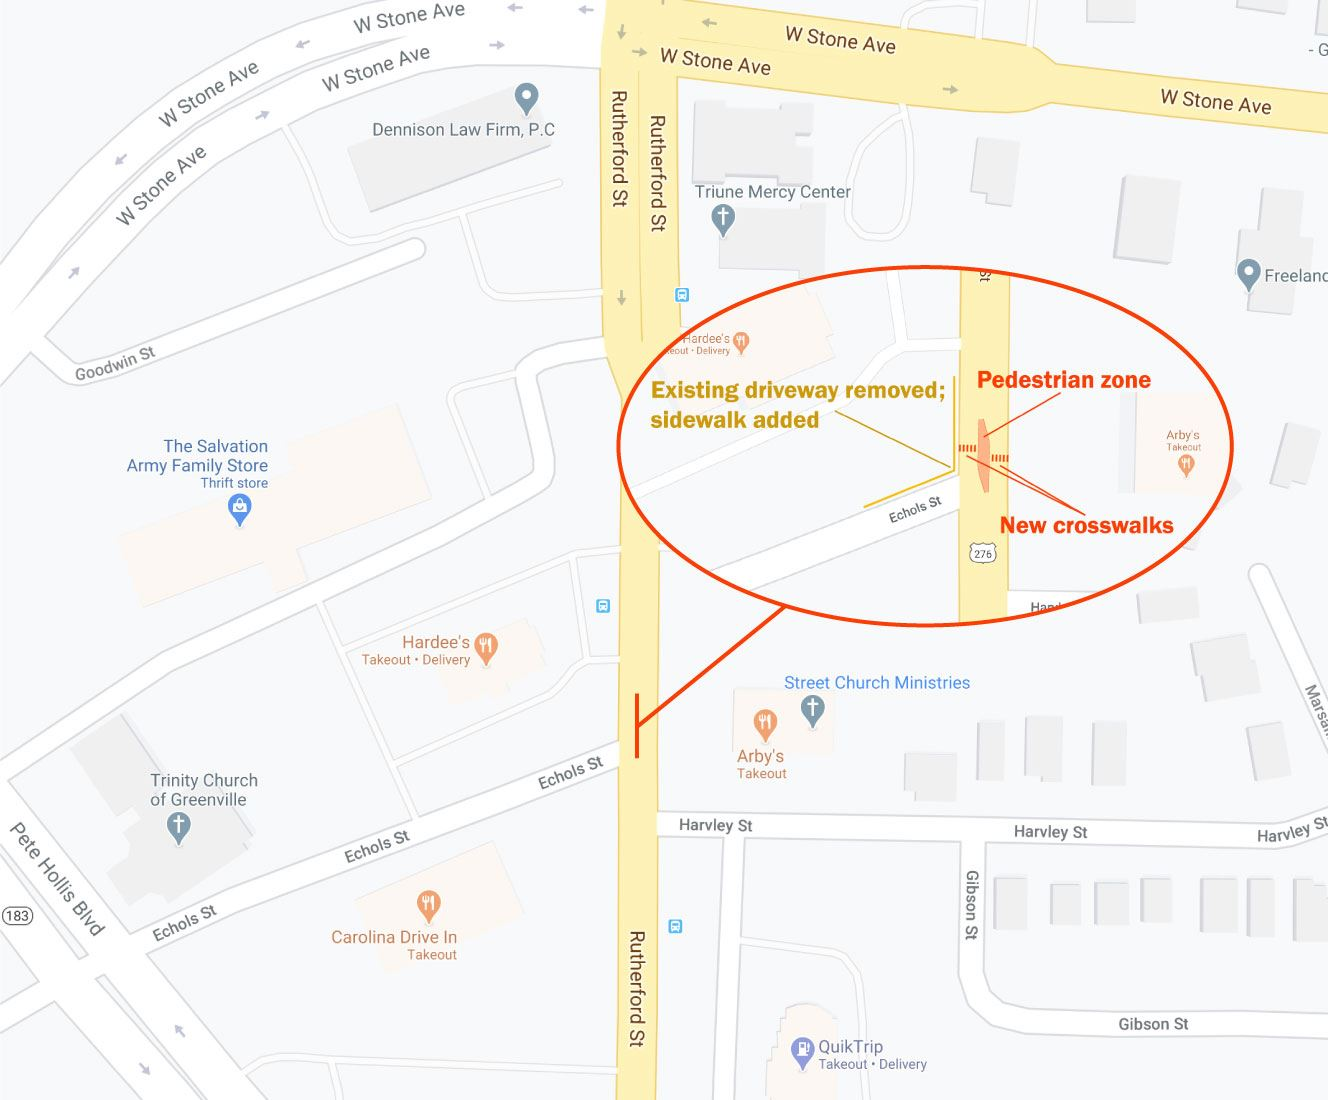 Map showing location of pedestrian walkway